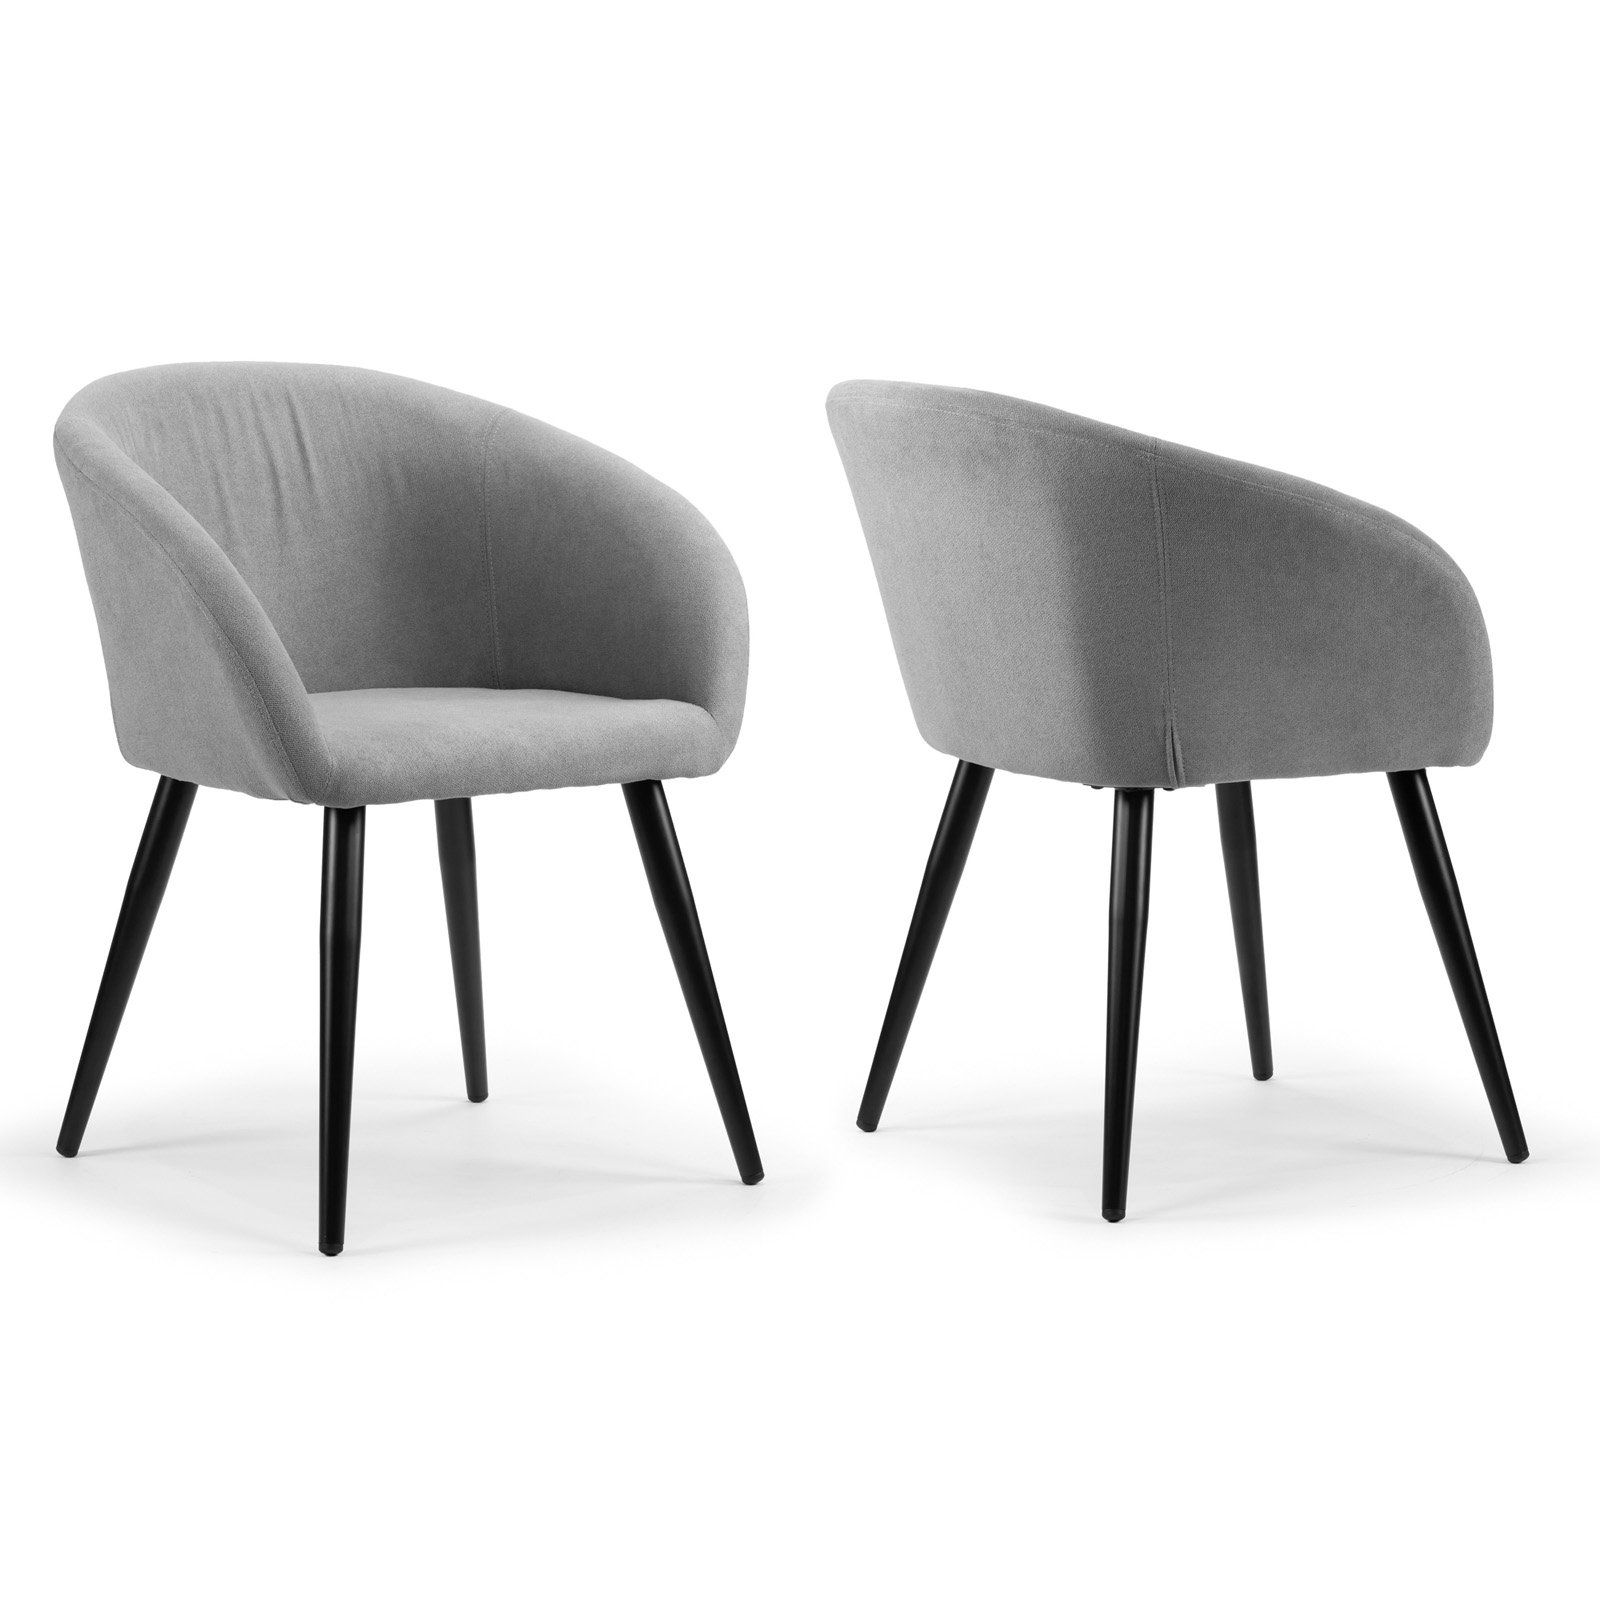 Glamour Home Amma Mid Century Dining Arm Chair Set Of 2 Fabric